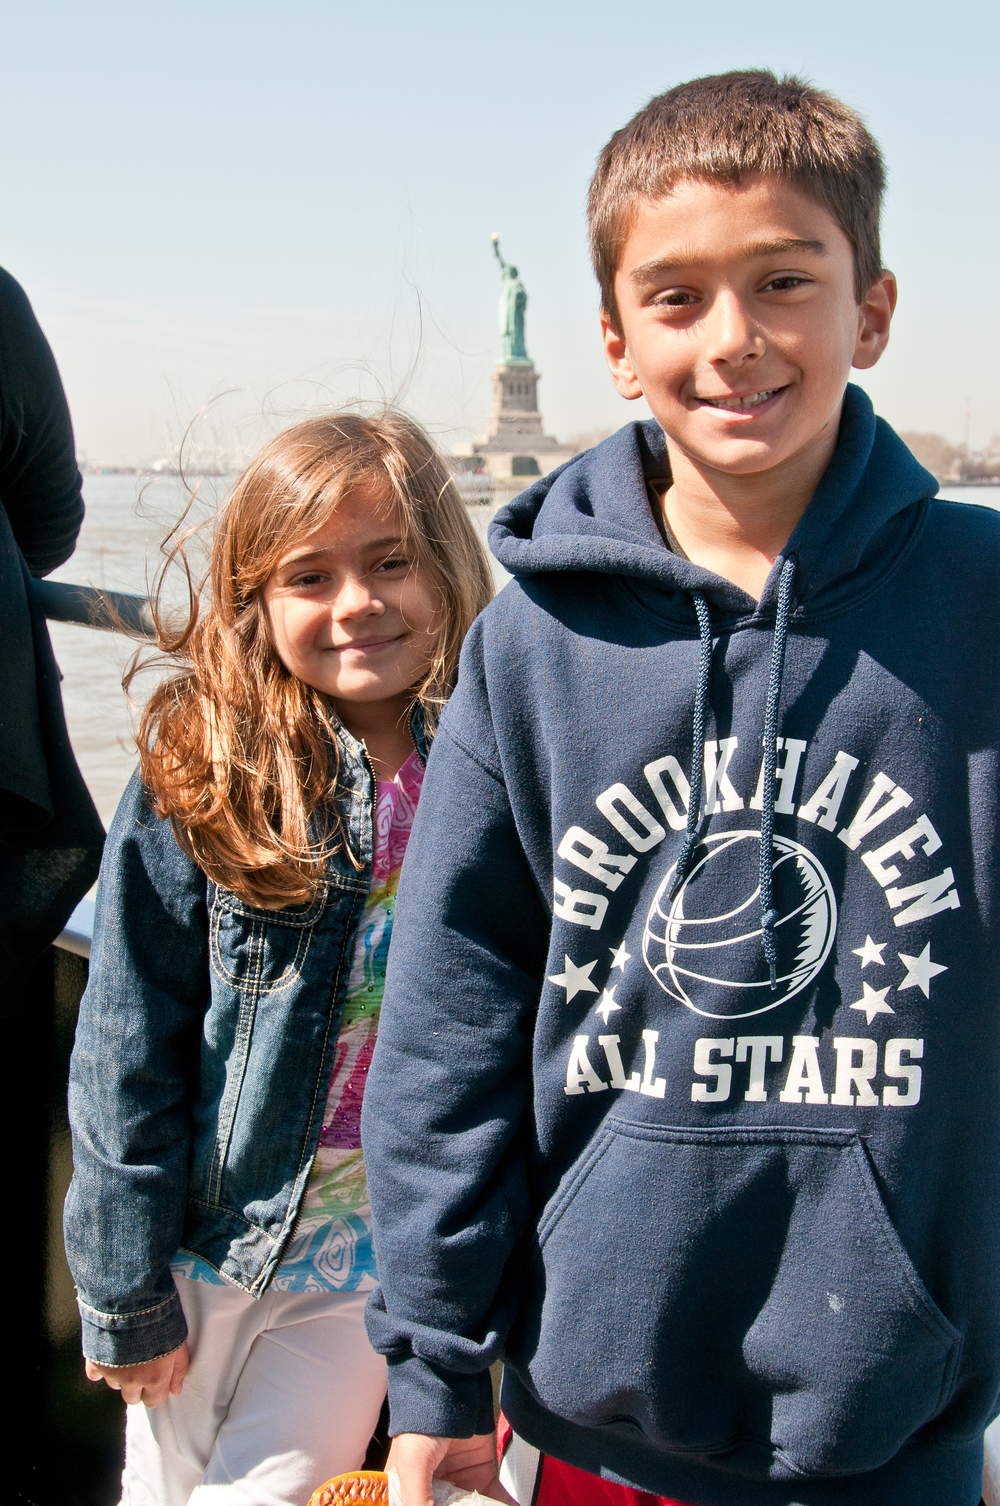 Zak Naya and Lady Liberty.jpg